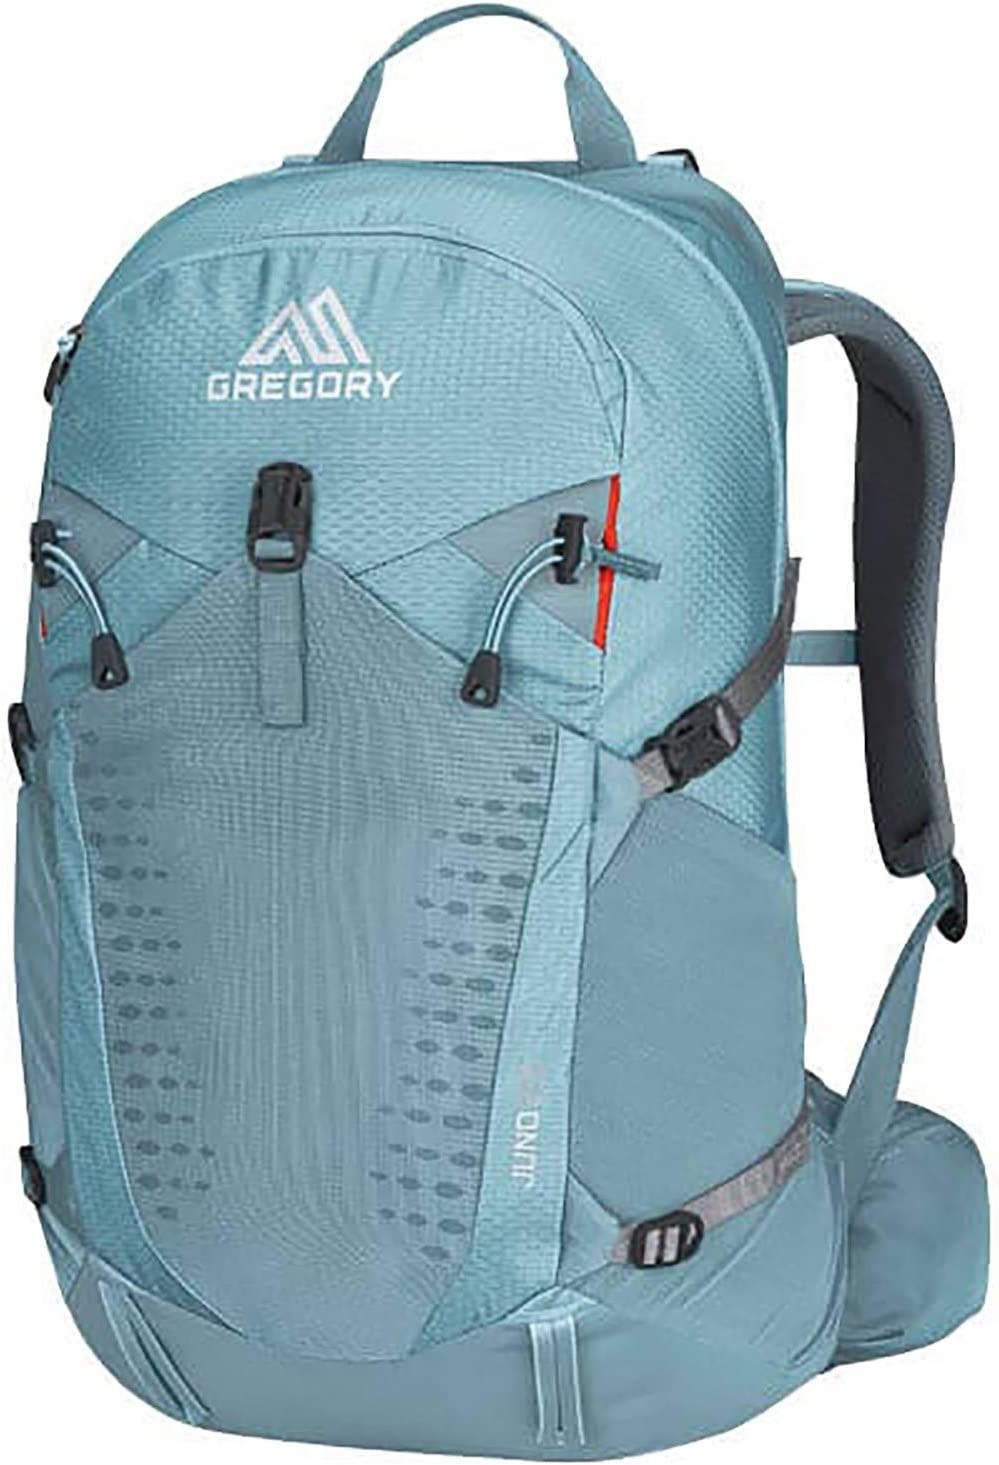 Gregory Mountain Products Juno 25 Liter Women's Day Hiking Backpack | Hiking, Walking, Travel | Free Hydration Bladder, Breathable Components, Cushioned Straps | Stay Hydrated on the Trail